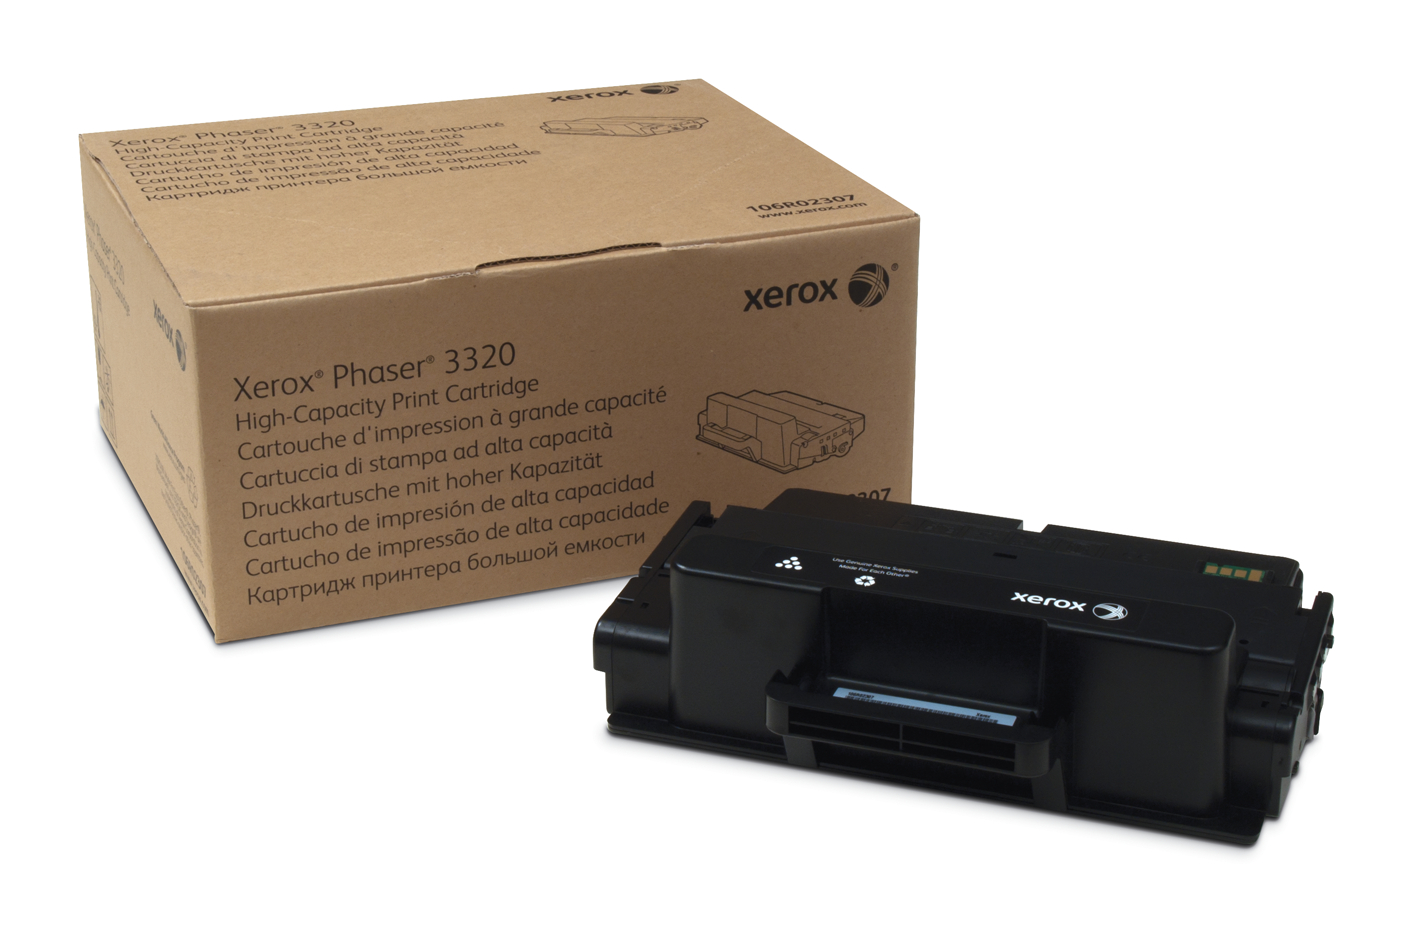 Xerox Phaser 3320 Black toner